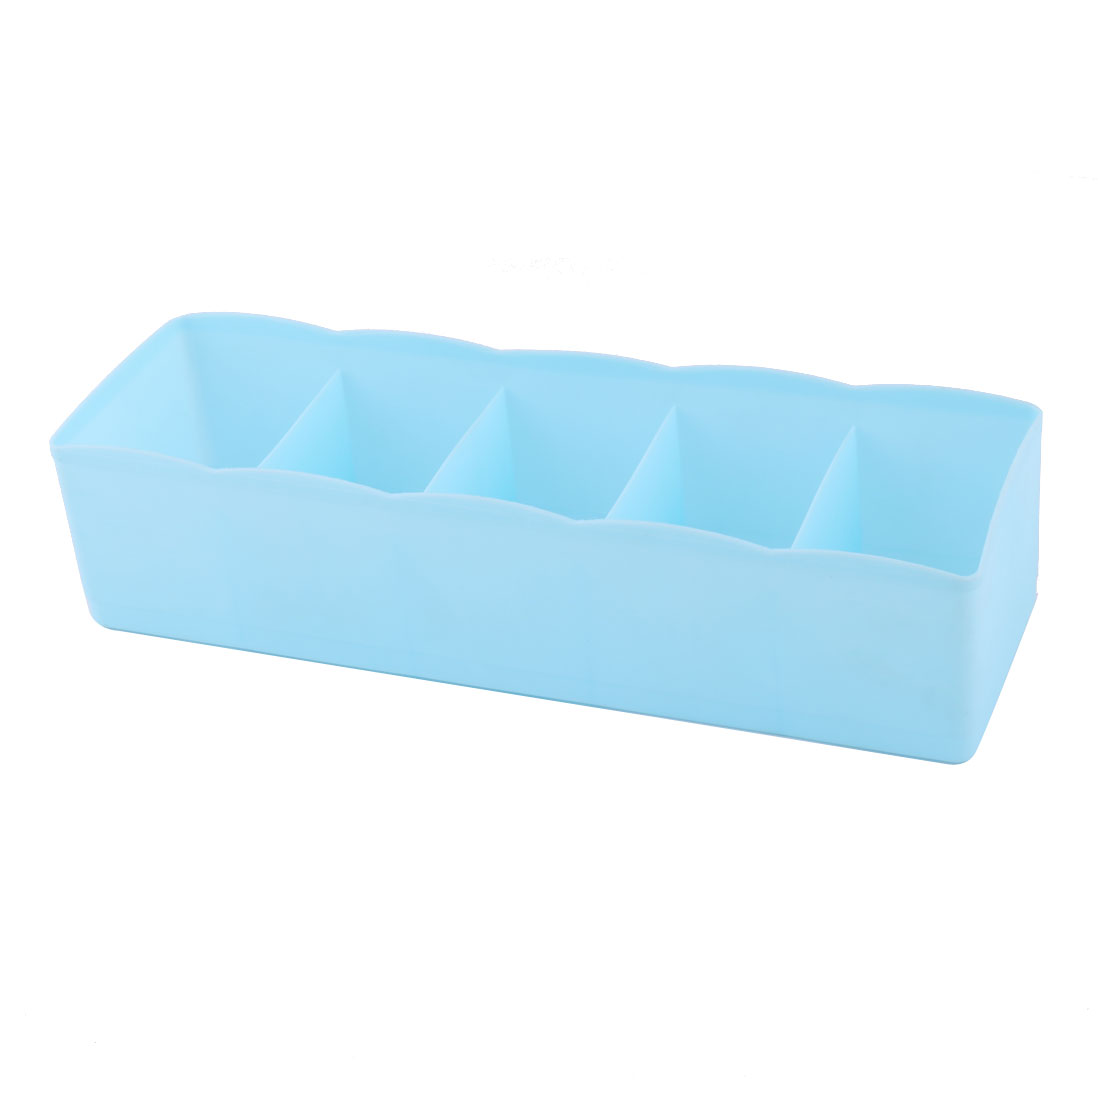 Home Plastic Rectangle 5 Compartments Desk Decor Sundries Organizer Storage Box Blue